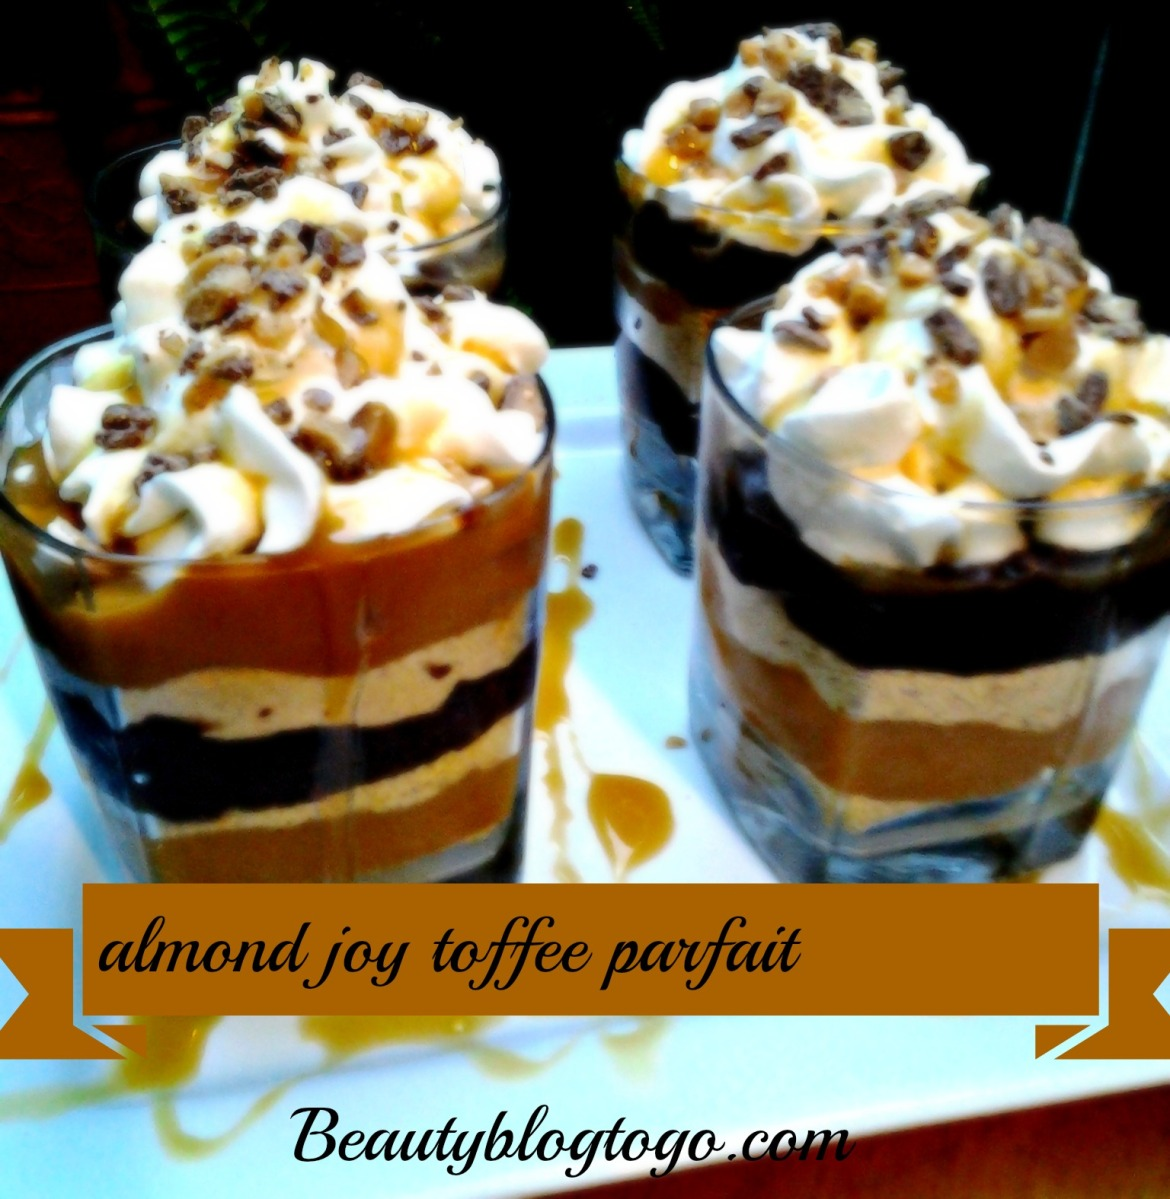 ALMOND JOY TOFFEE PARFAIT